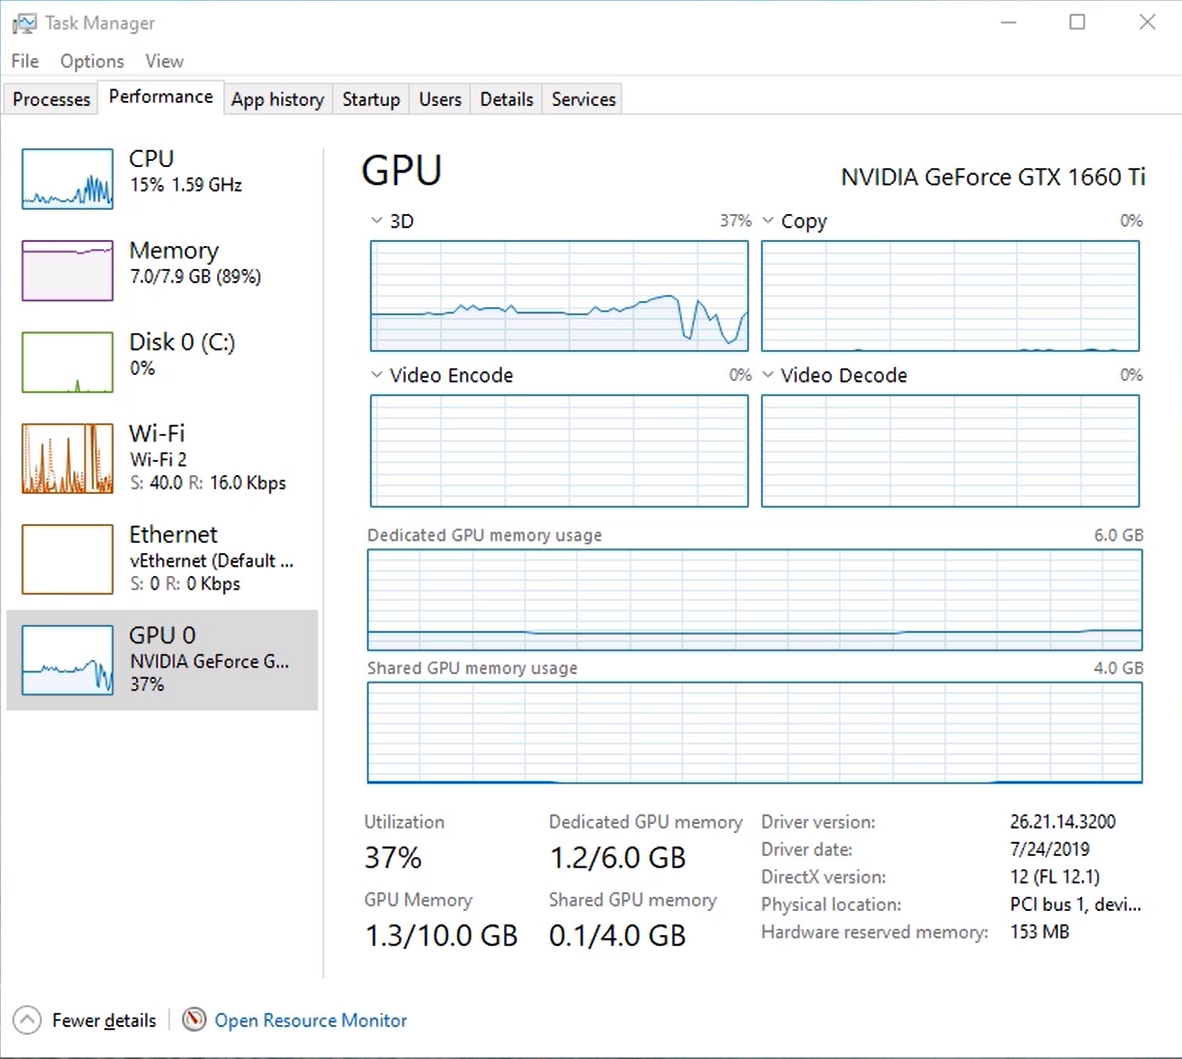 The GPU display you'll see in Task Manager's Performance tab when you select your GPU.